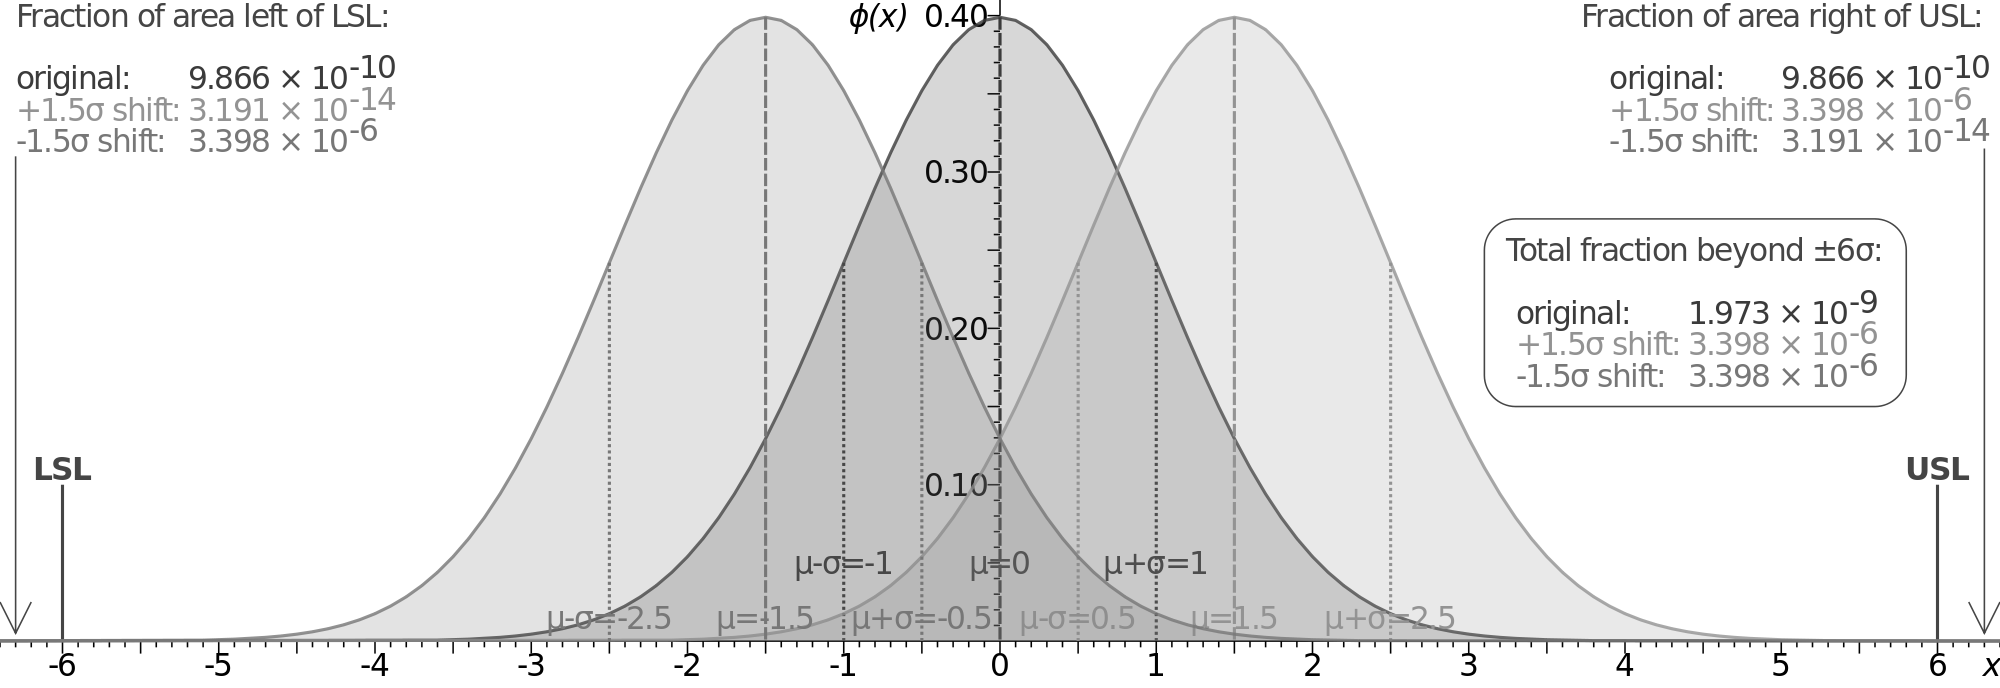 Figure: Probability density plot for $\pm6\sigma$ with $1,5\sigma$ shifts (adapted from Wikipedia, 2012)